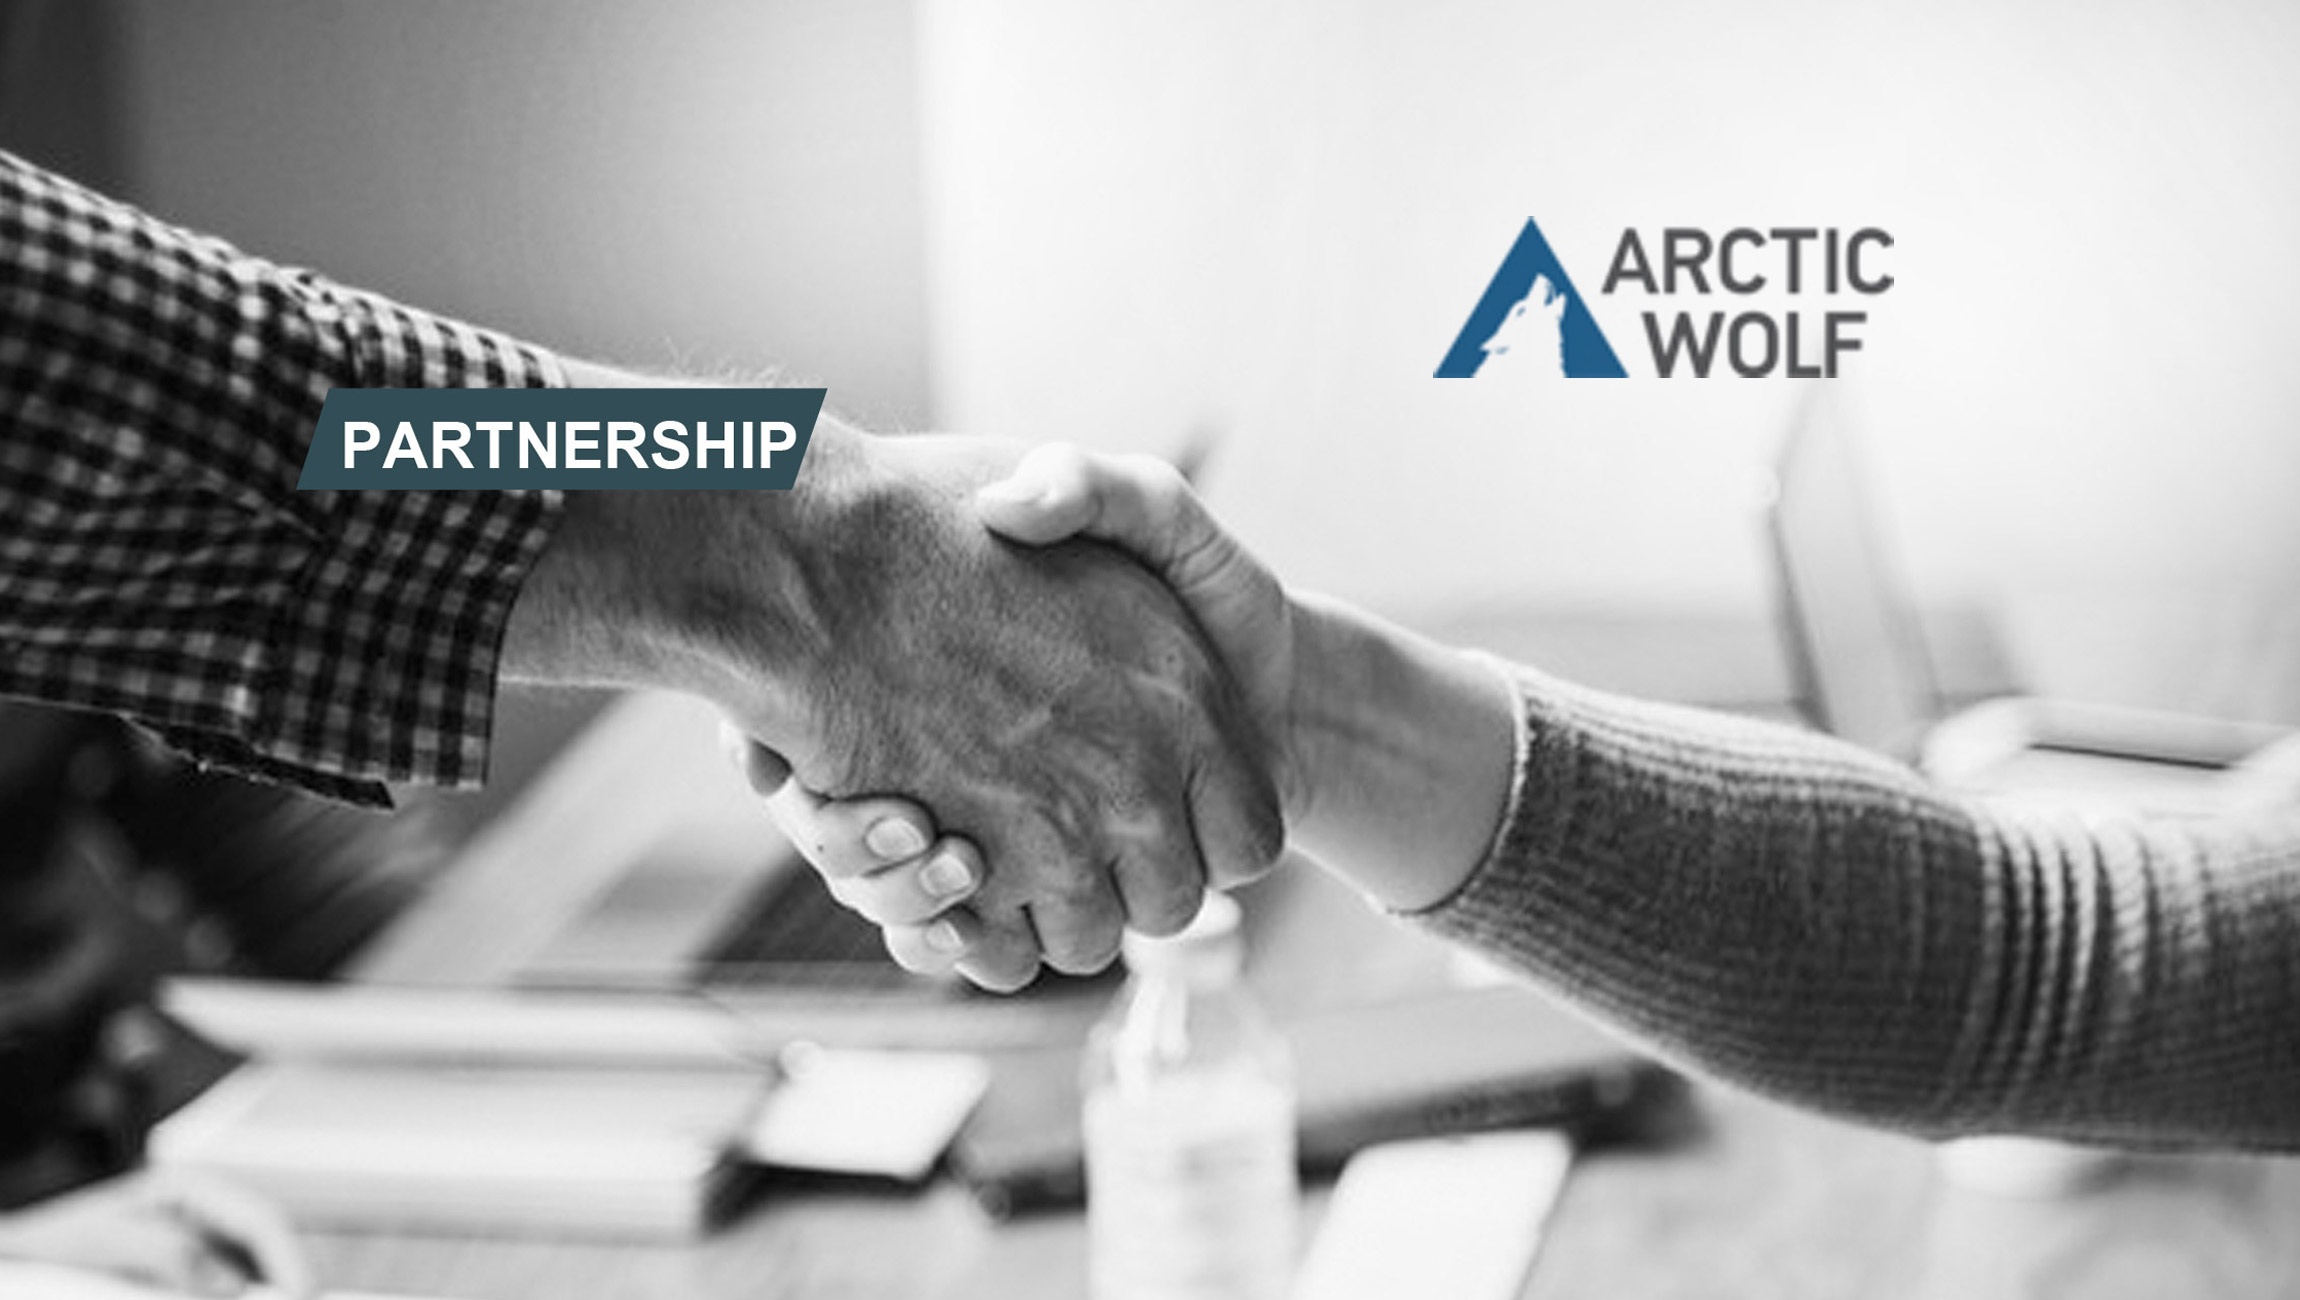 Arctic Wolf Selects AWS to Power Global Cybersecurity Offering at Scale